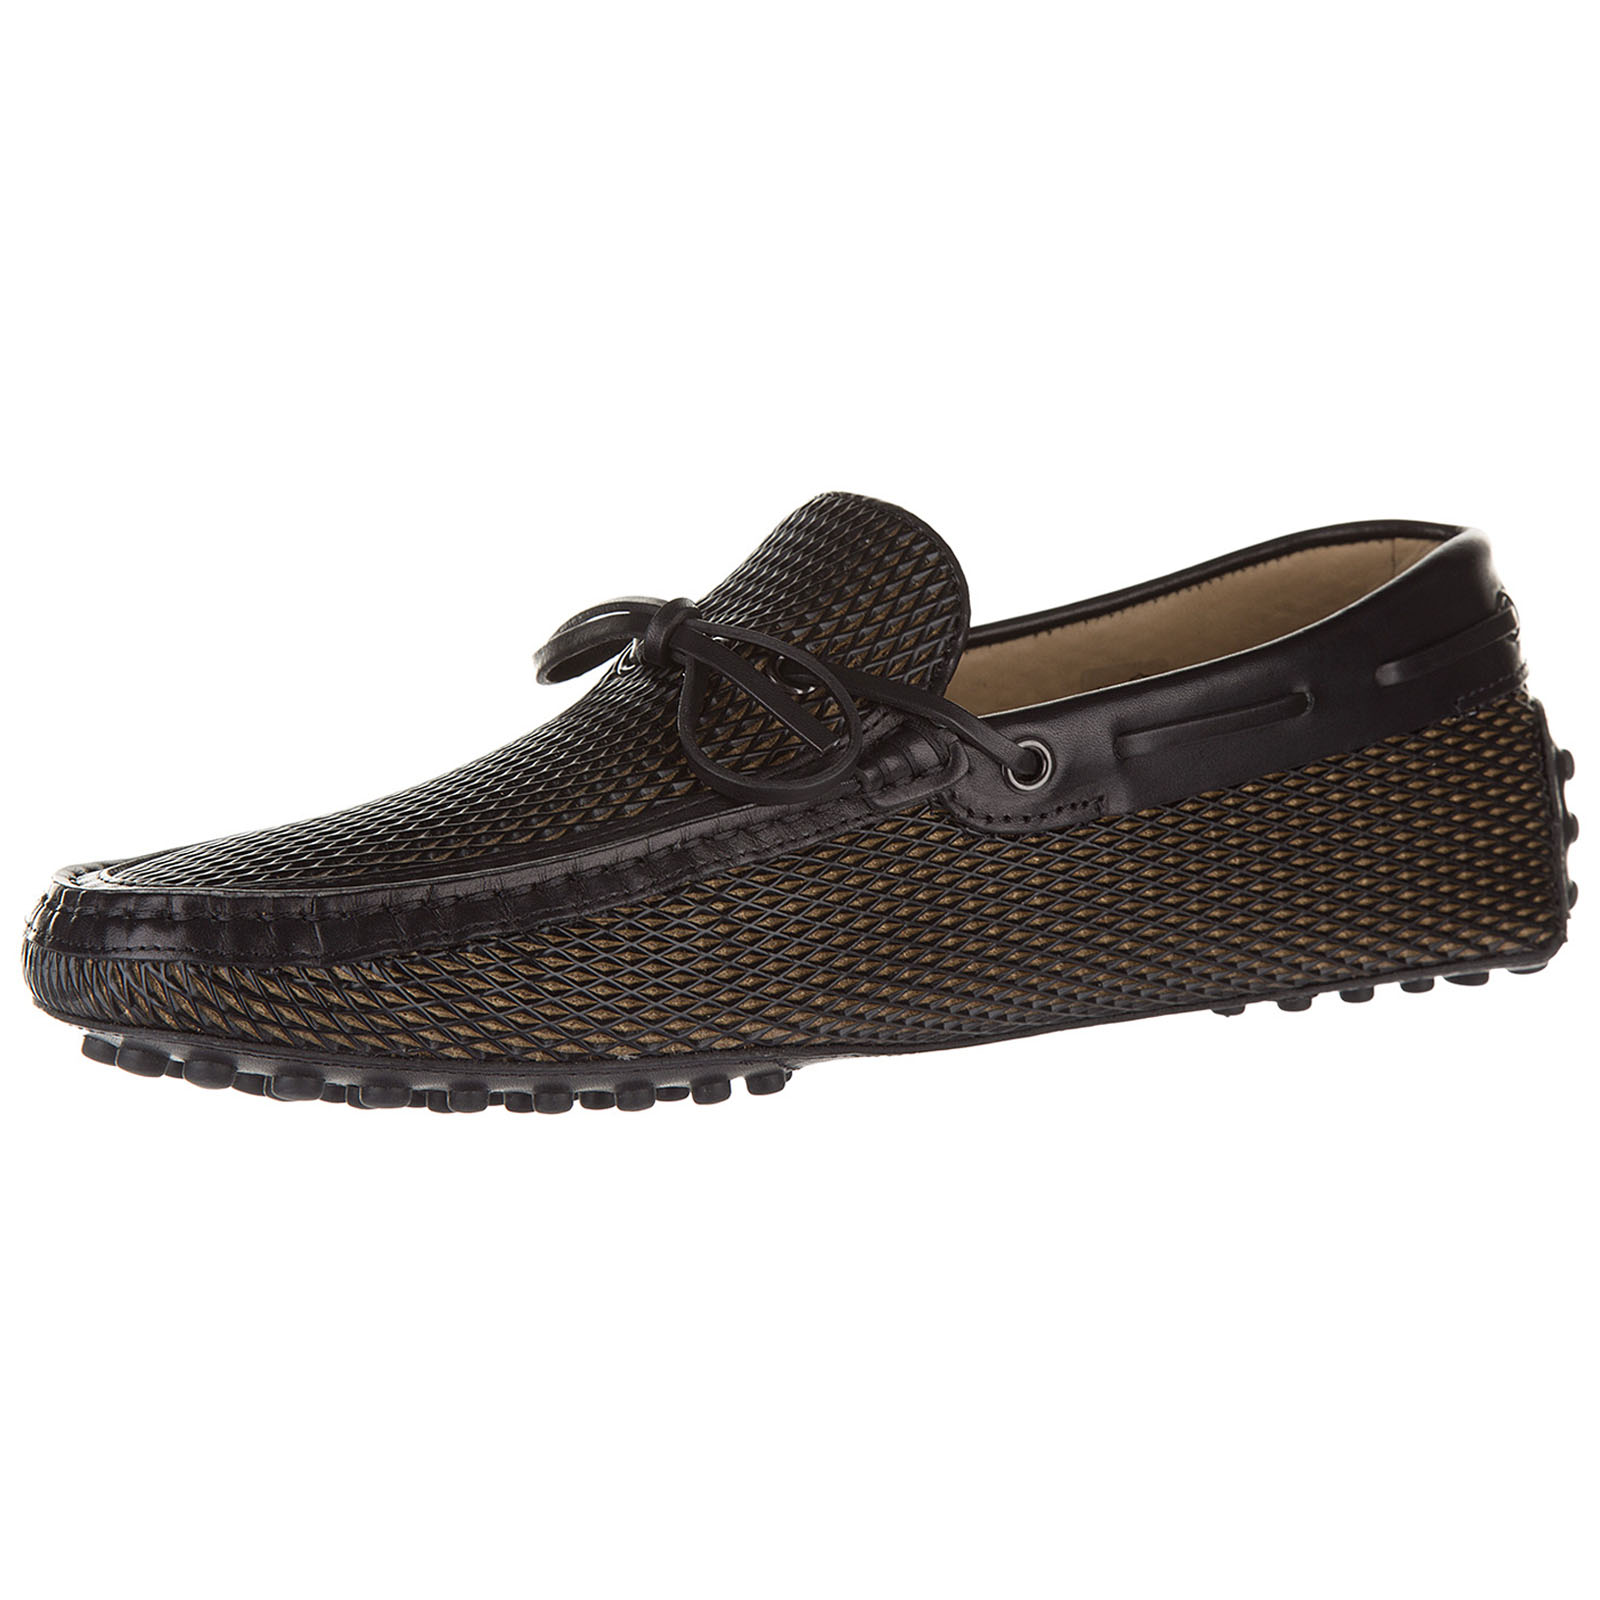 Herren leder mokassins slipper  gommini